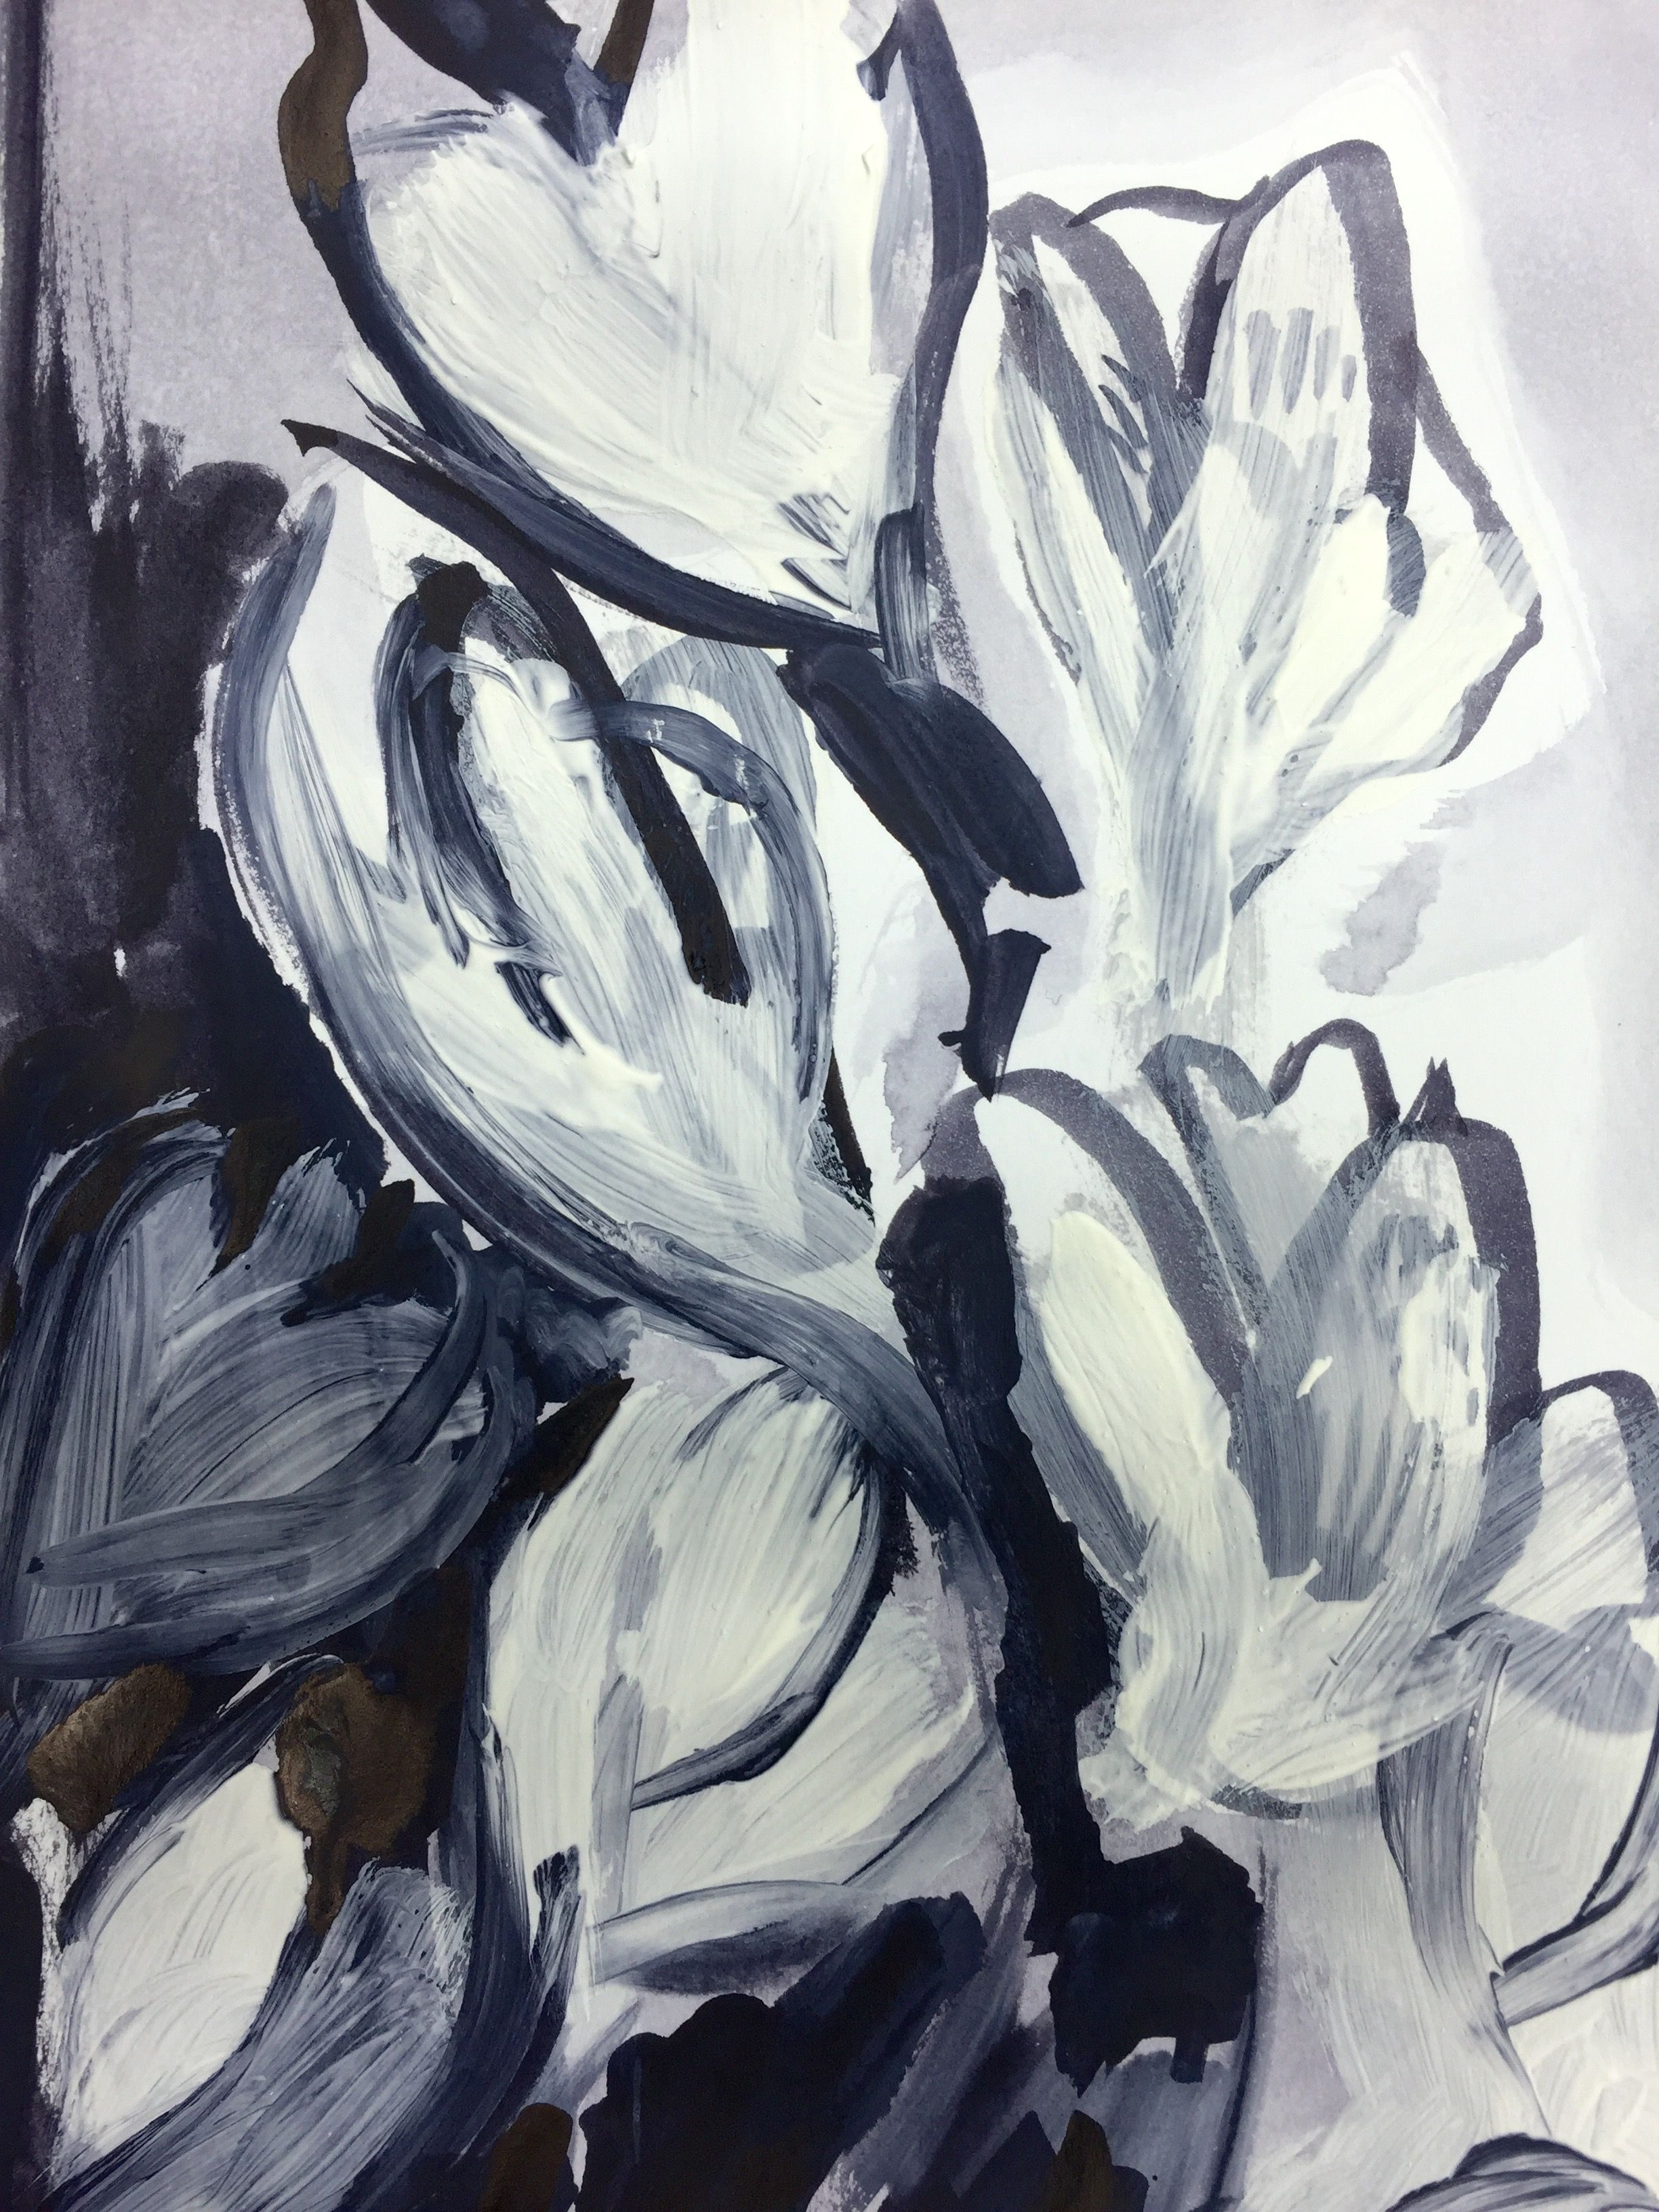 Ink Wash And Brush Studies Of Plants And Flowers Inspired By The